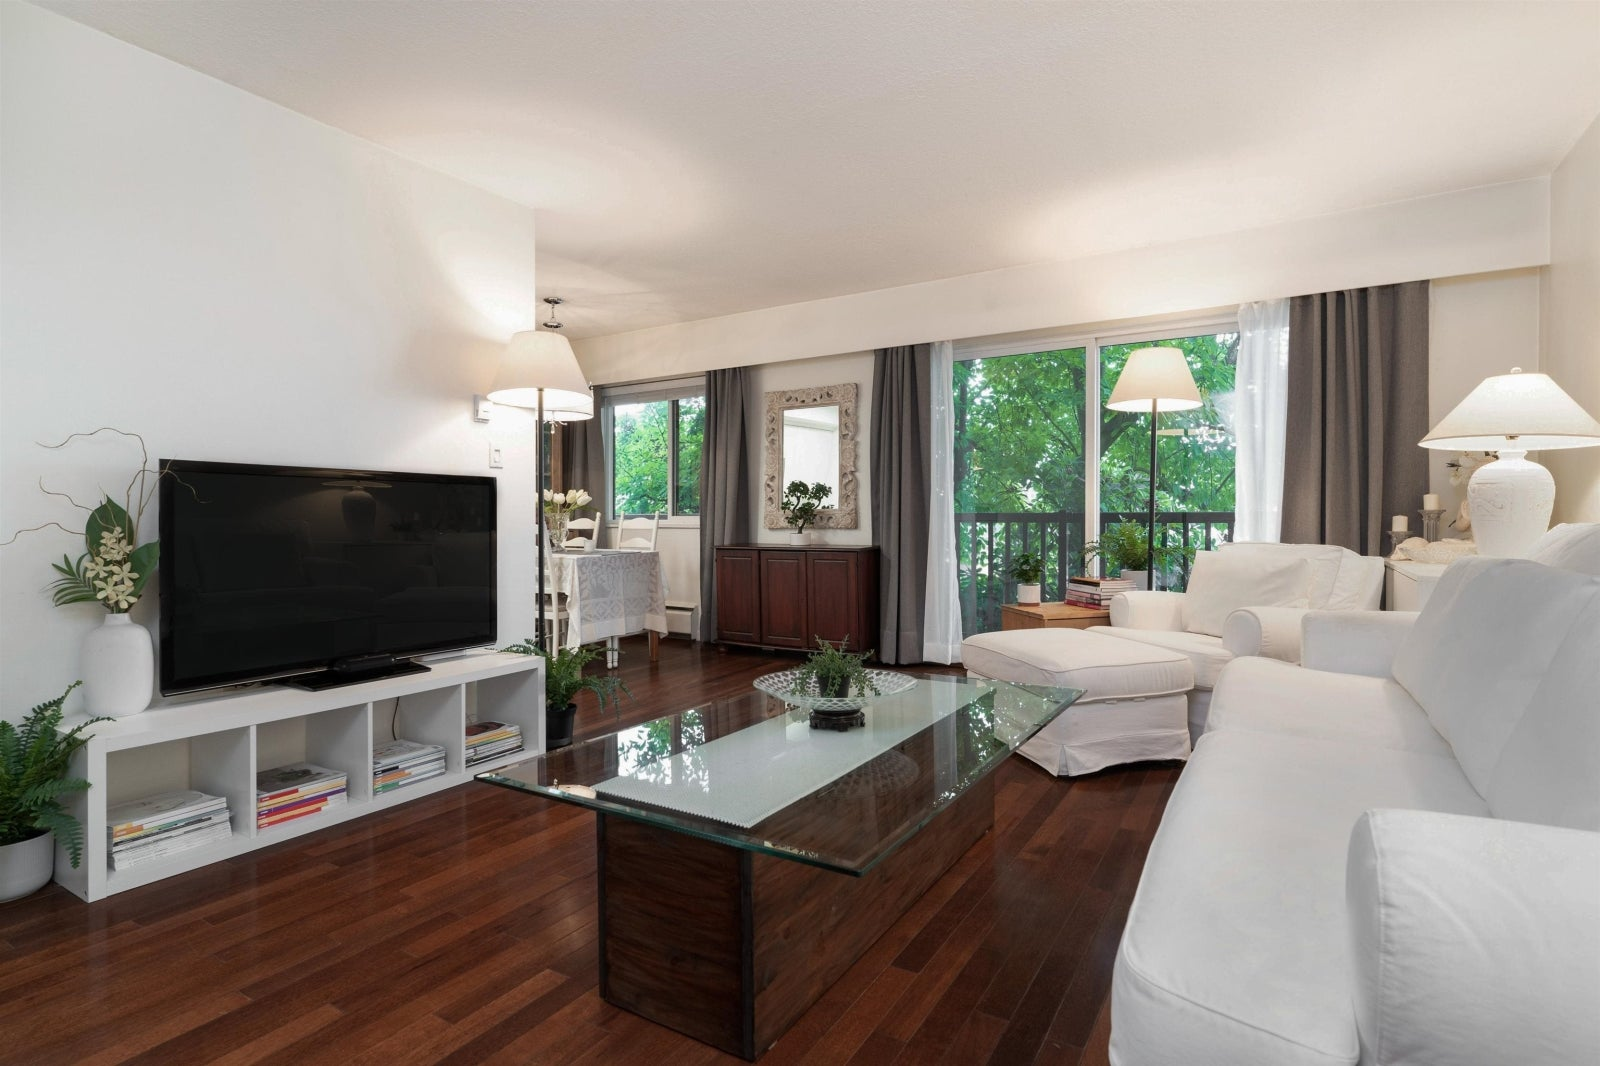 107 123 E 19TH STREET - Central Lonsdale Apartment/Condo for sale, 1 Bedroom (R2610372) #3